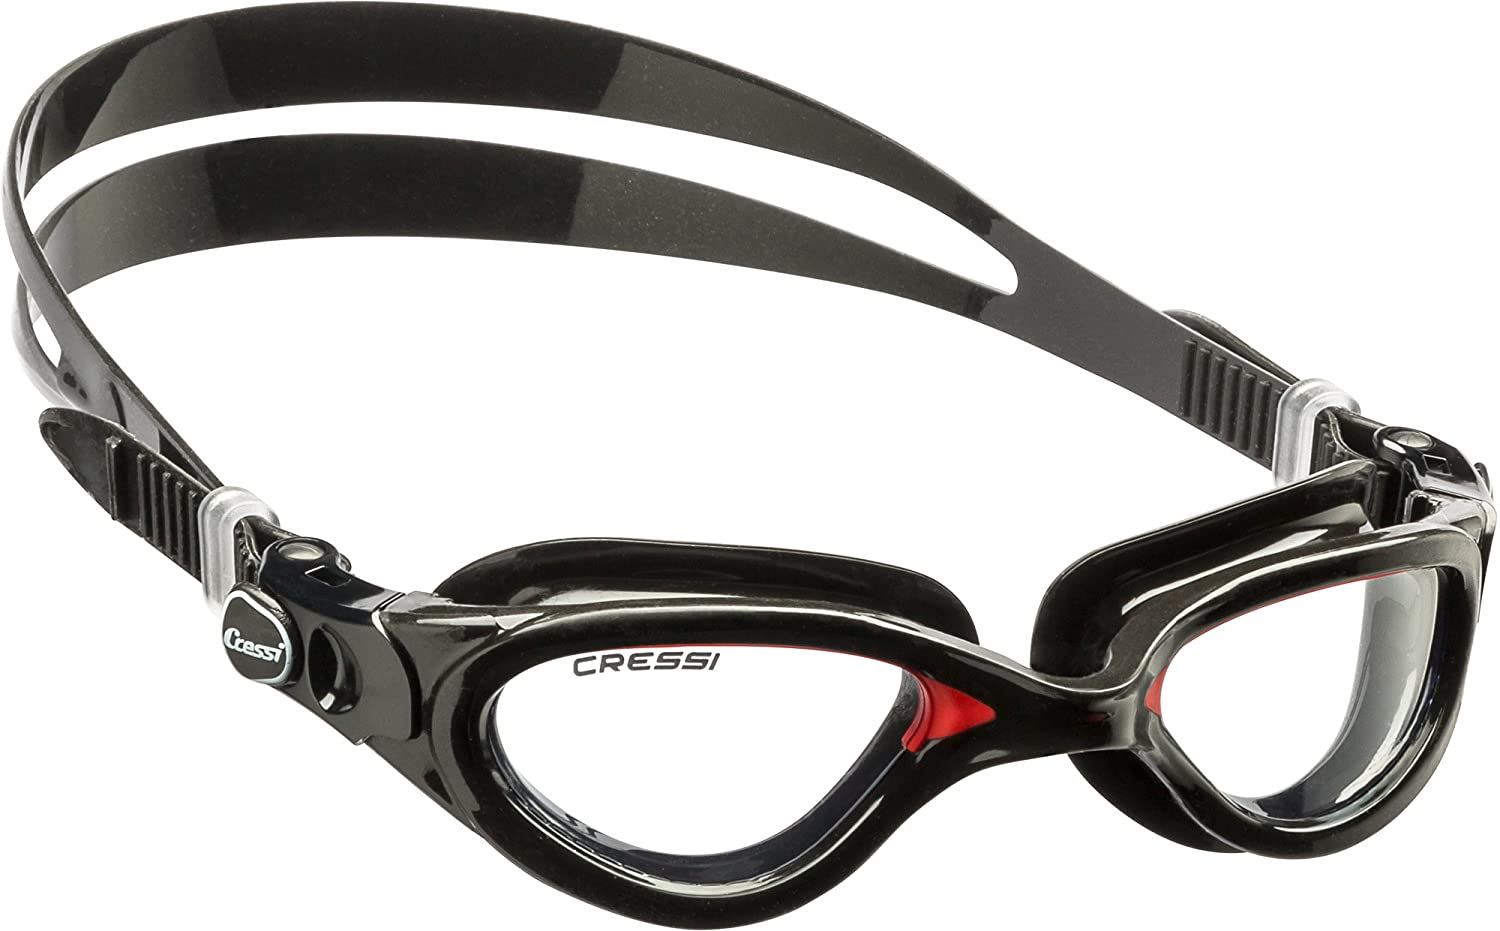 Cressi FLASH DE202391, Adult Swim Goggles, Negro/Rojo: Amazon.es: Deportes y aire libre